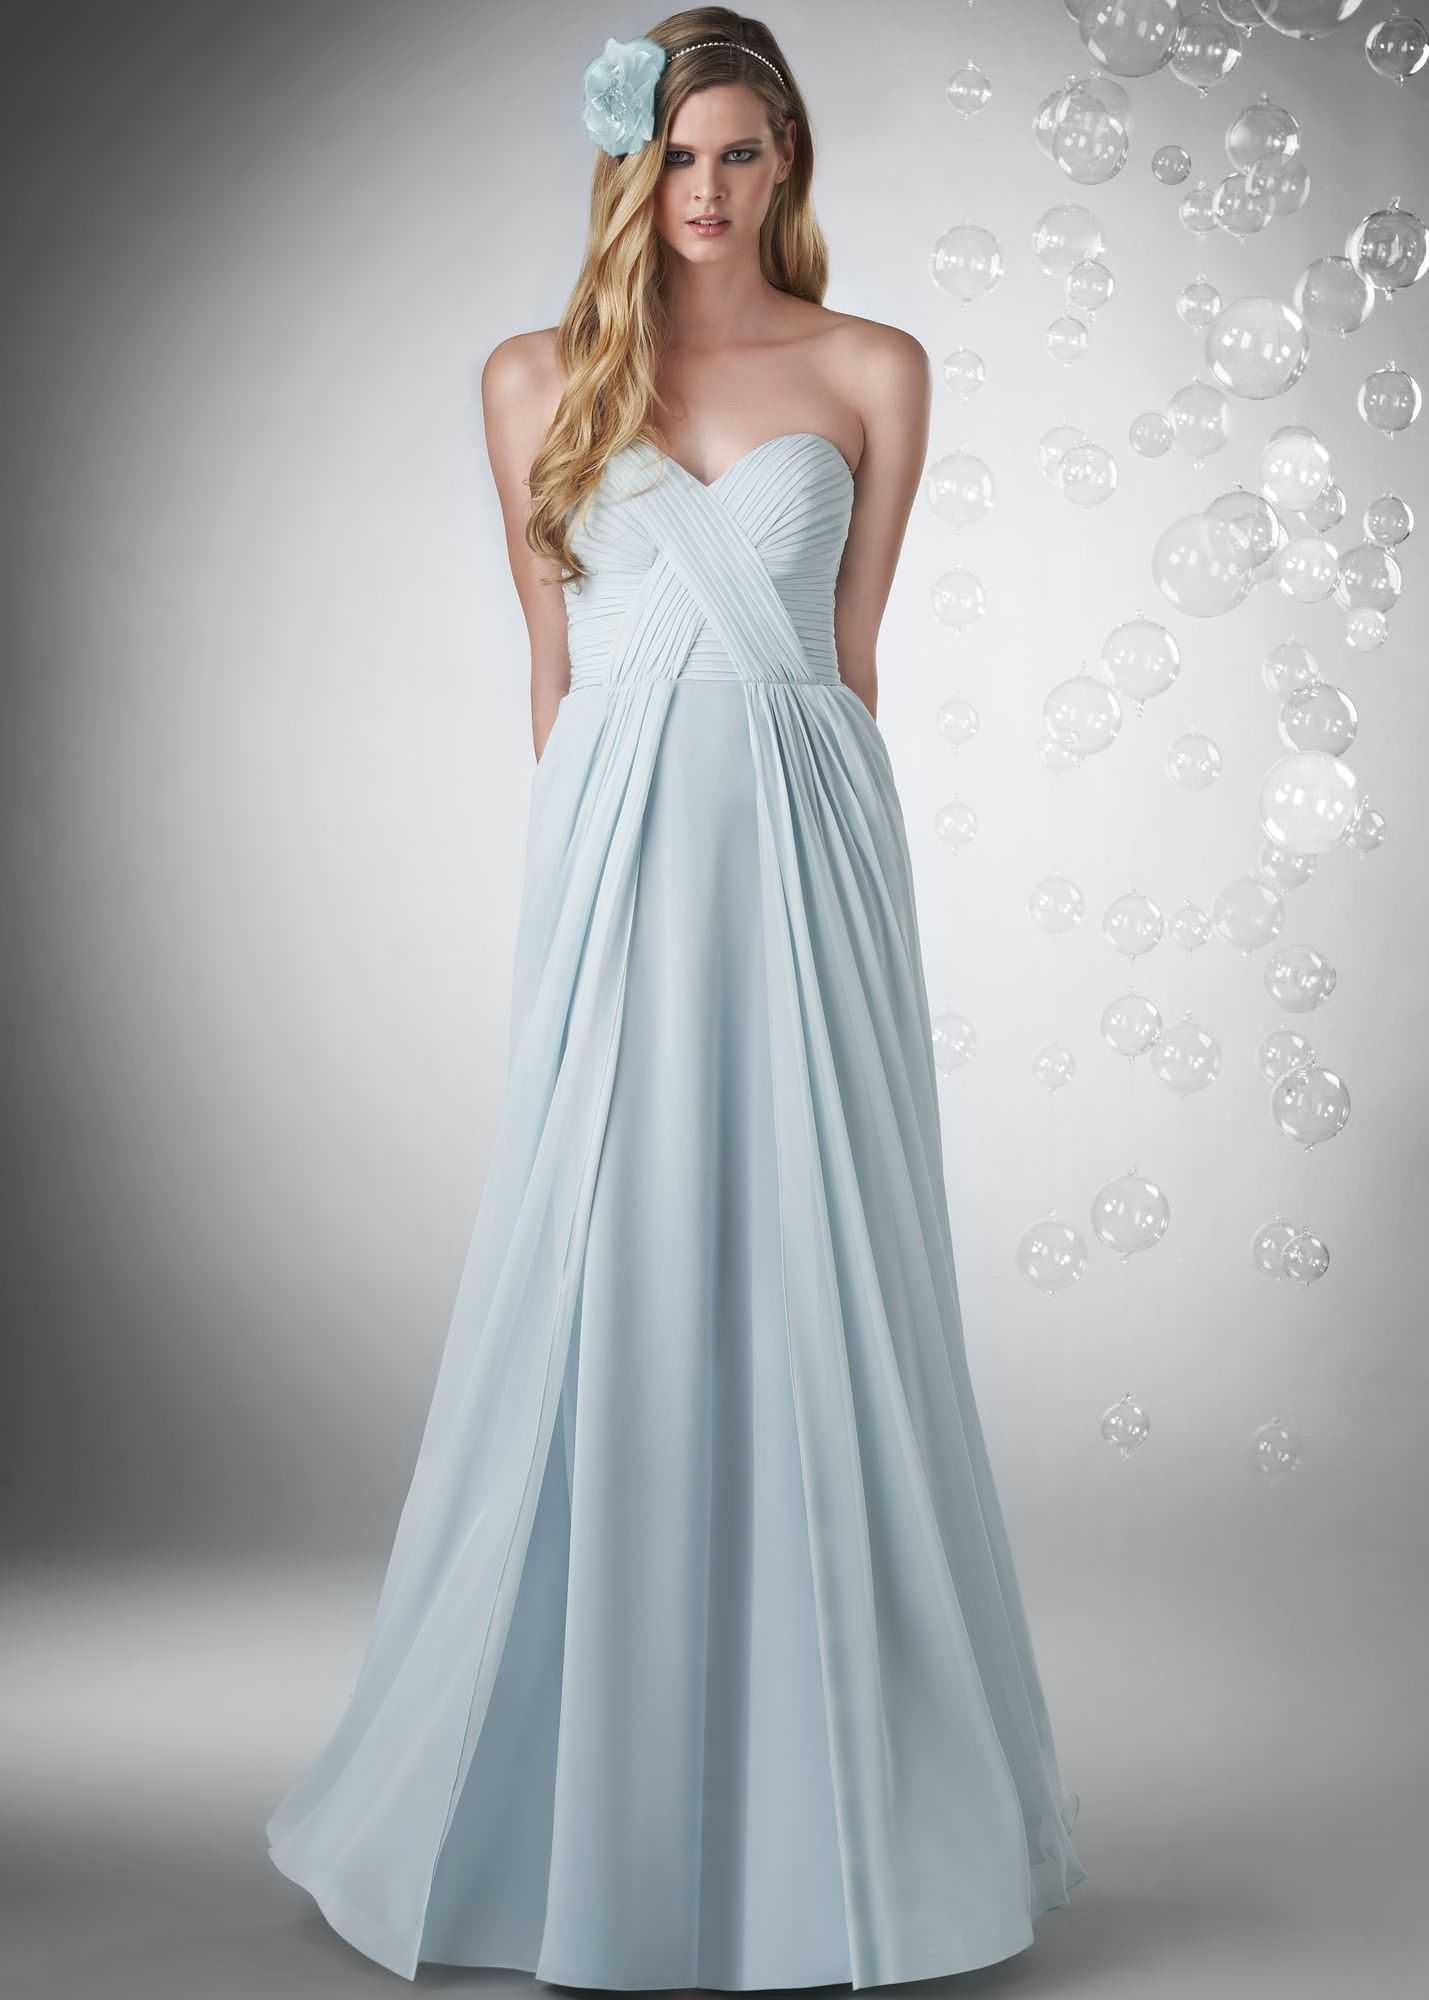 We have this in a dark gray called shadow bari jay strapless long